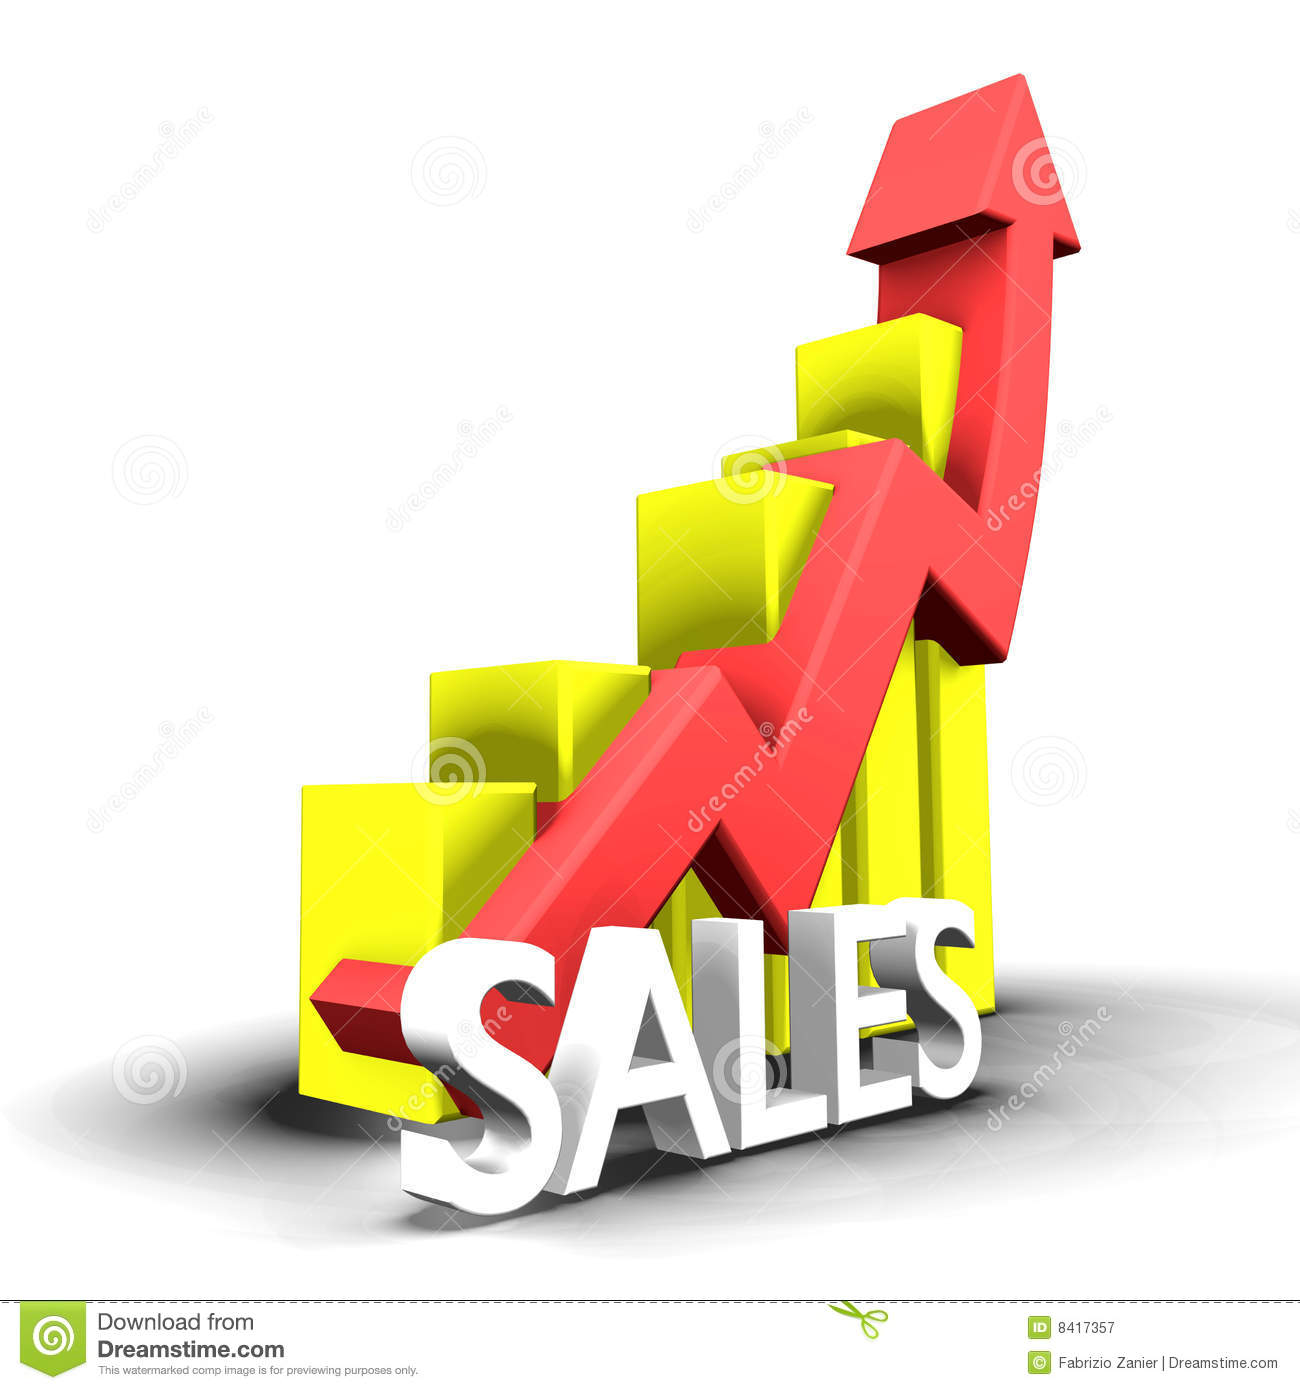 Statistics Graphic With Sales Word Royalty Free Stock Photography ...